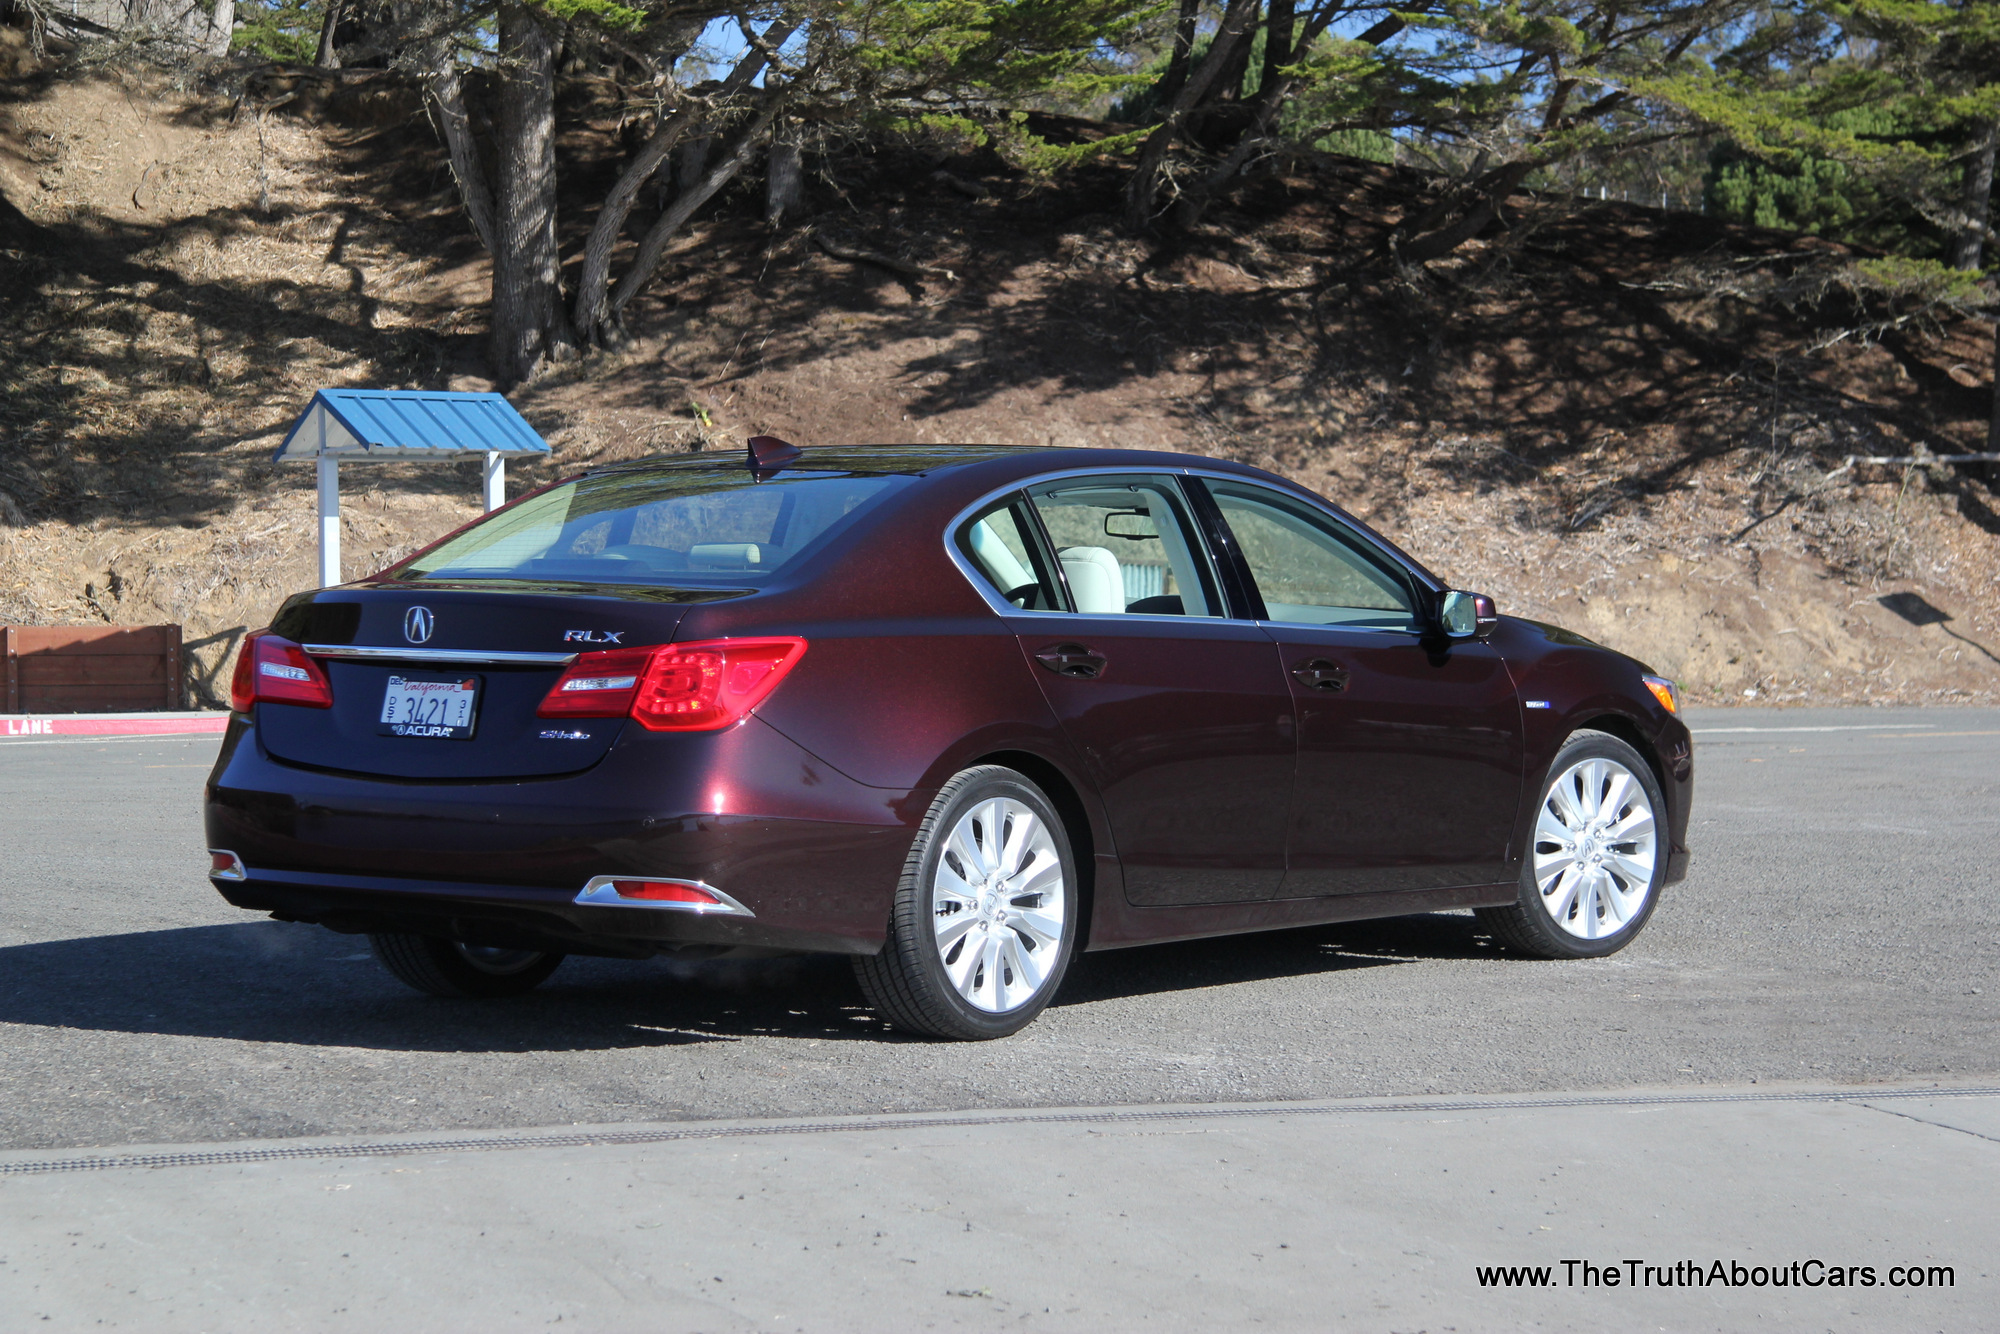 First Drive Review: 2014 Acura RLX Sport Hybrd (With Video